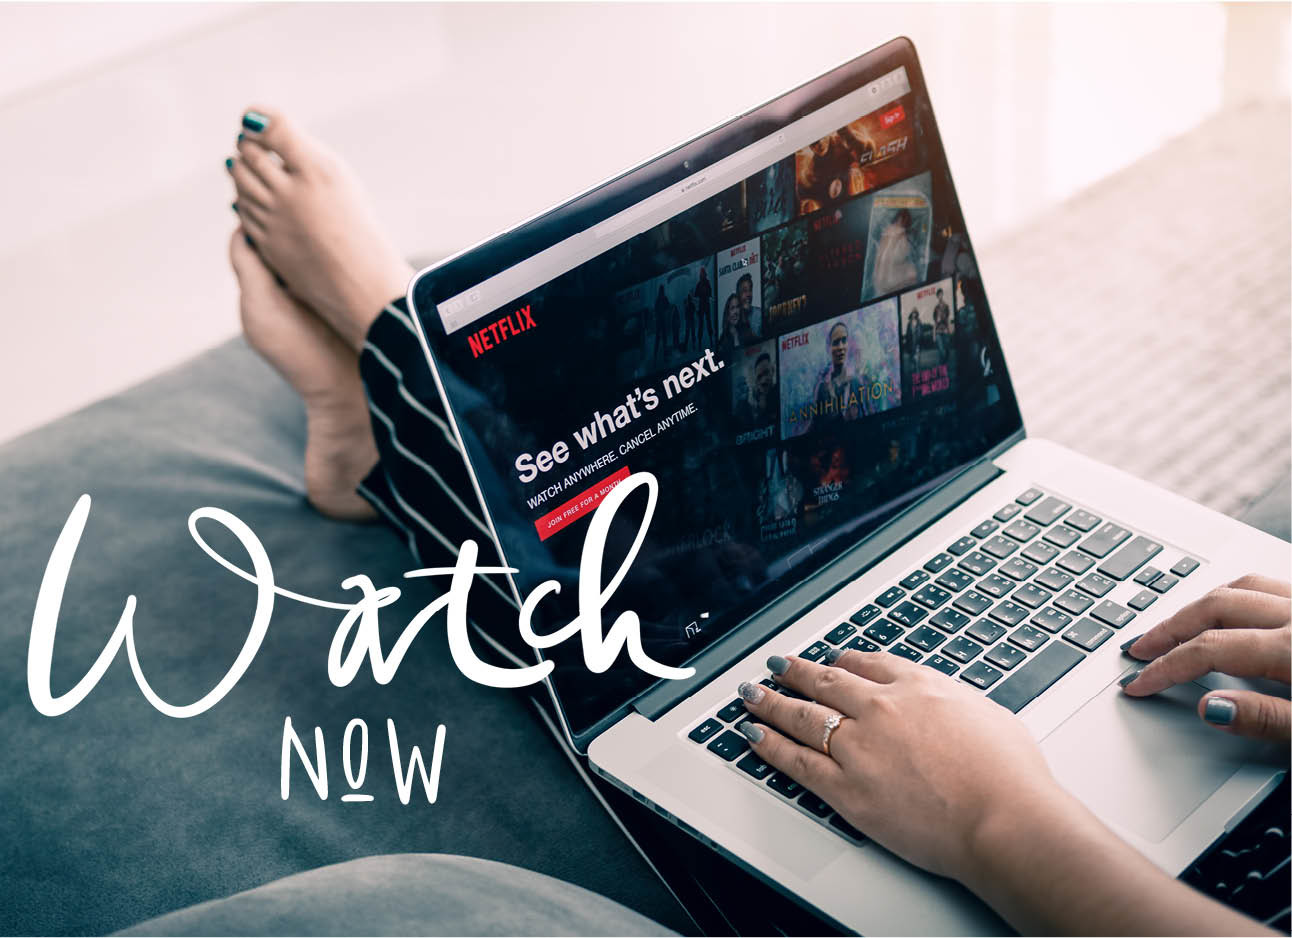 Netflix op computerscherm